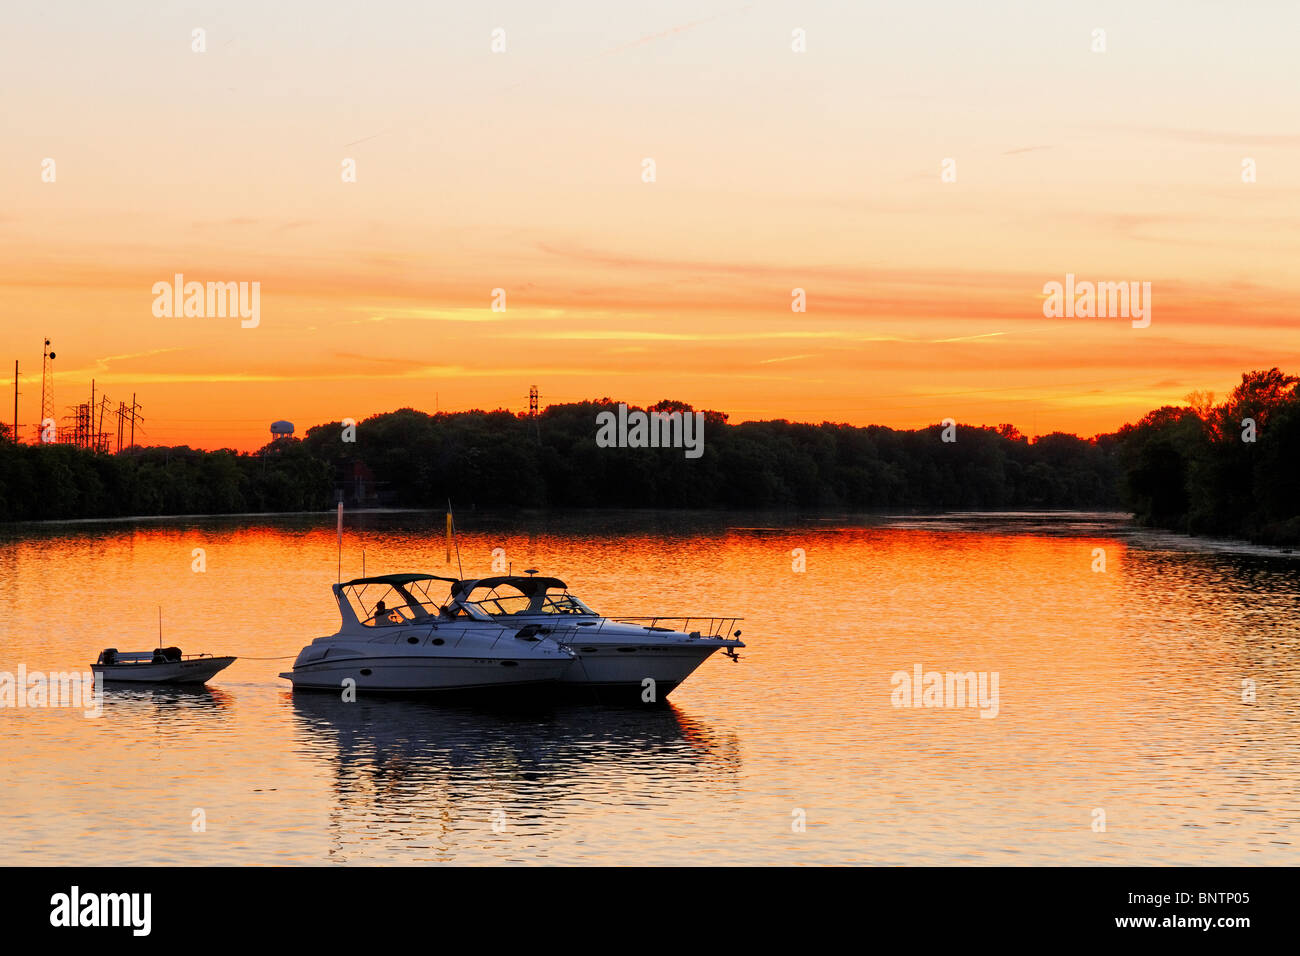 Boaters on the Mississippi during sunset - Stock Image